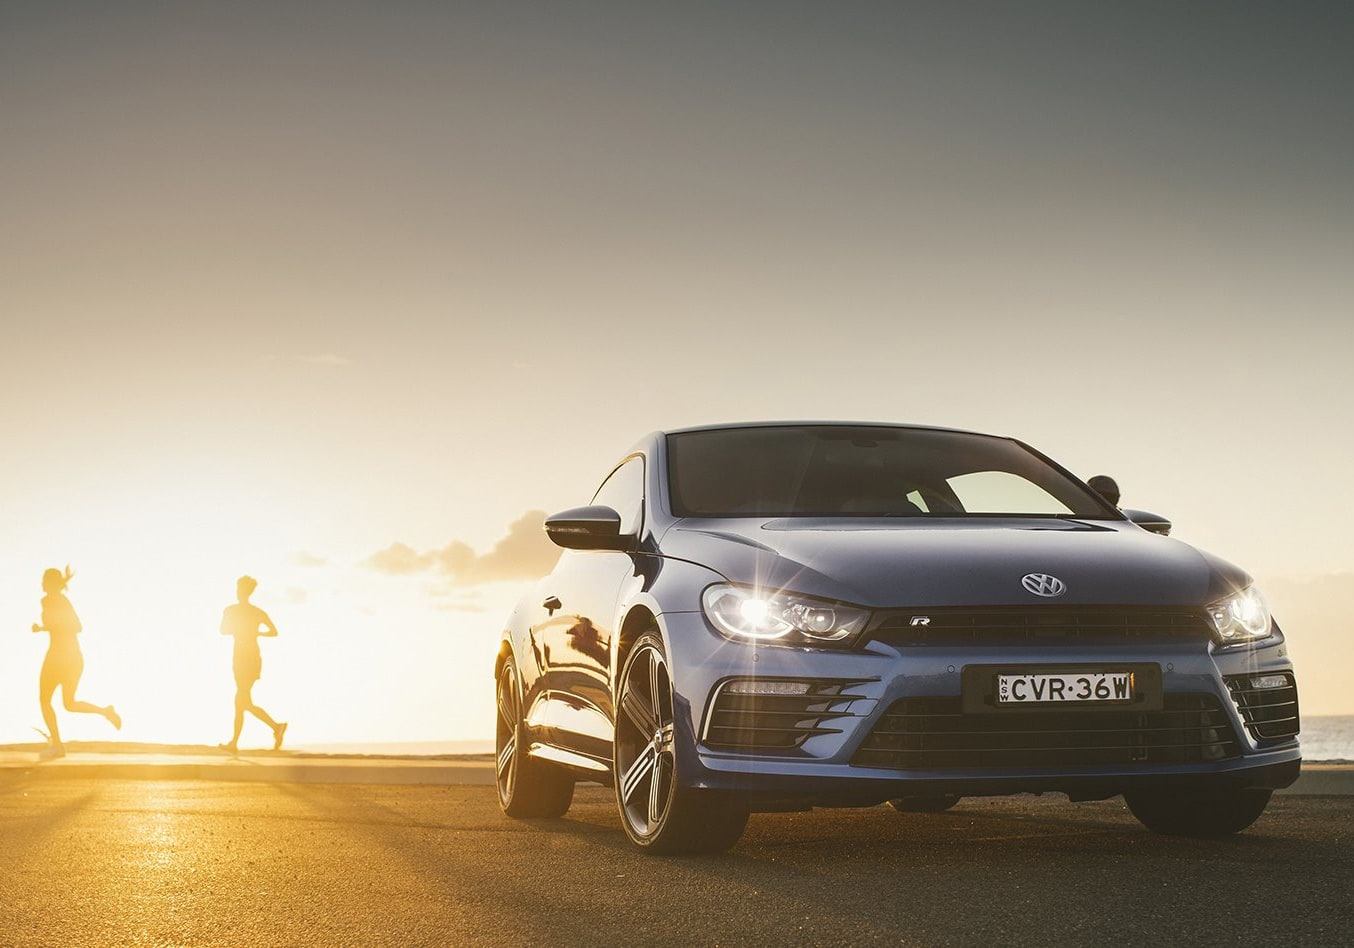 VW Scirocco R Front Jpg